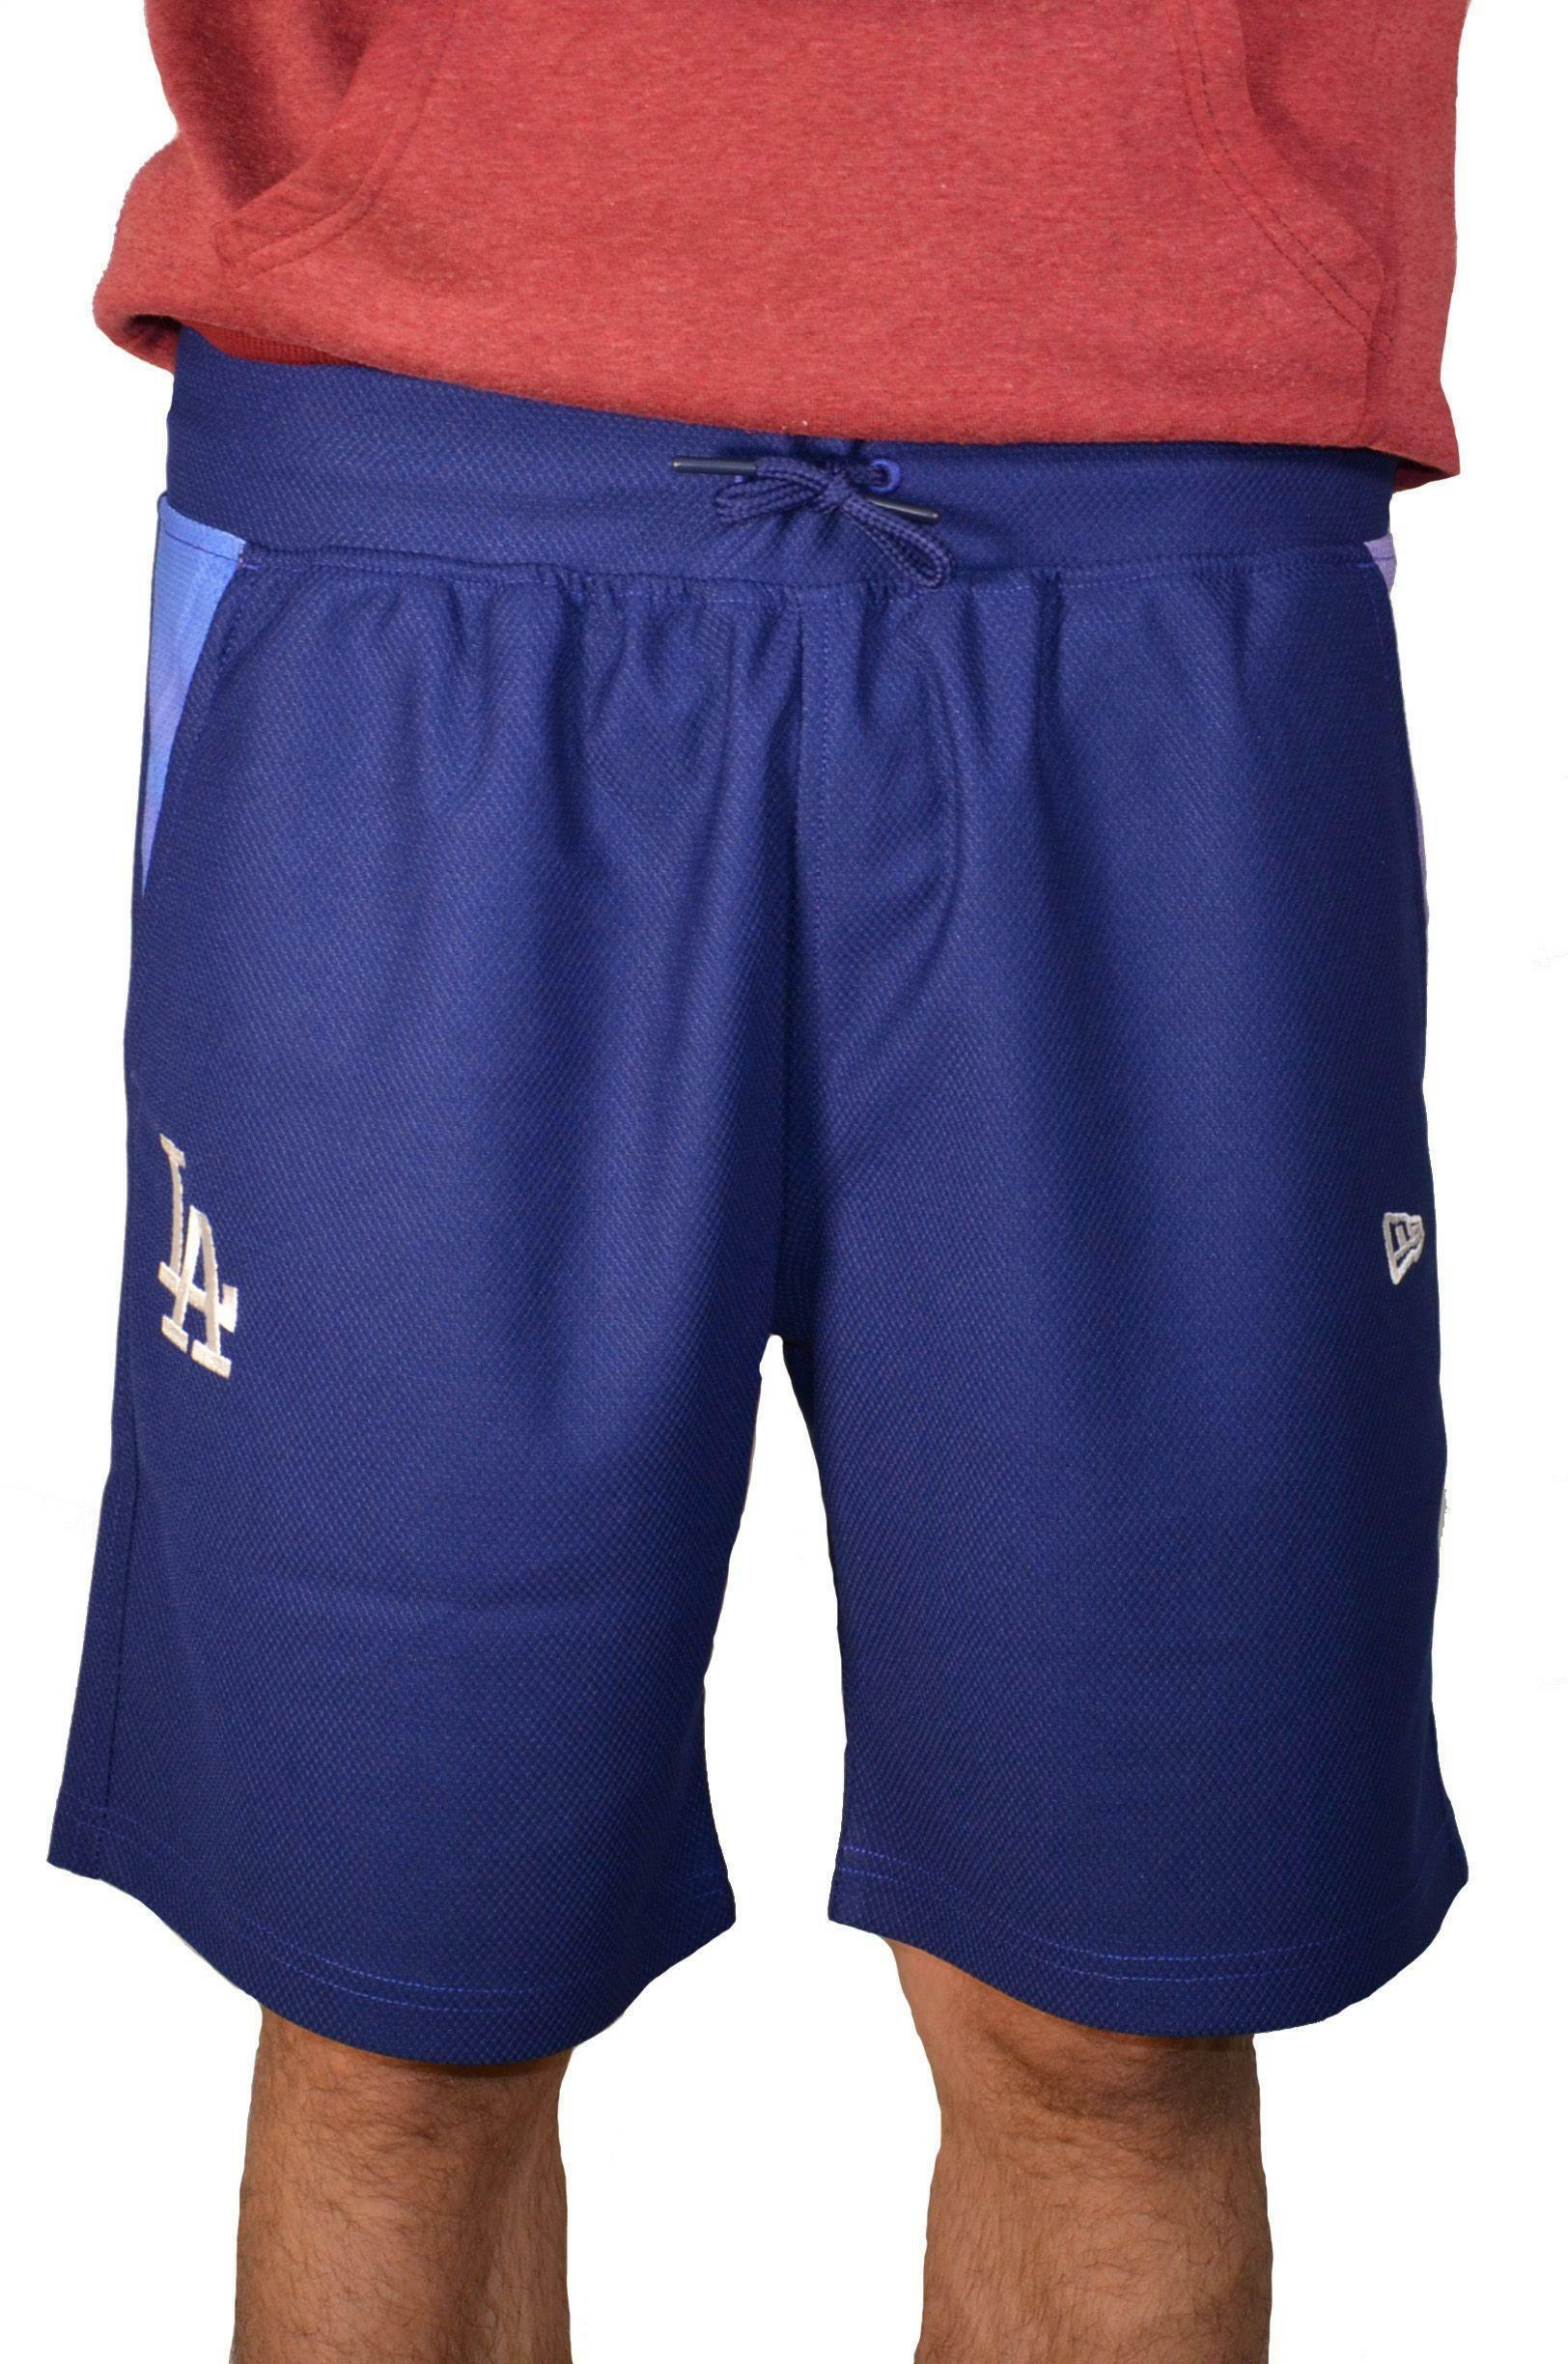 new era new era west coast pantaloncini uomo blu